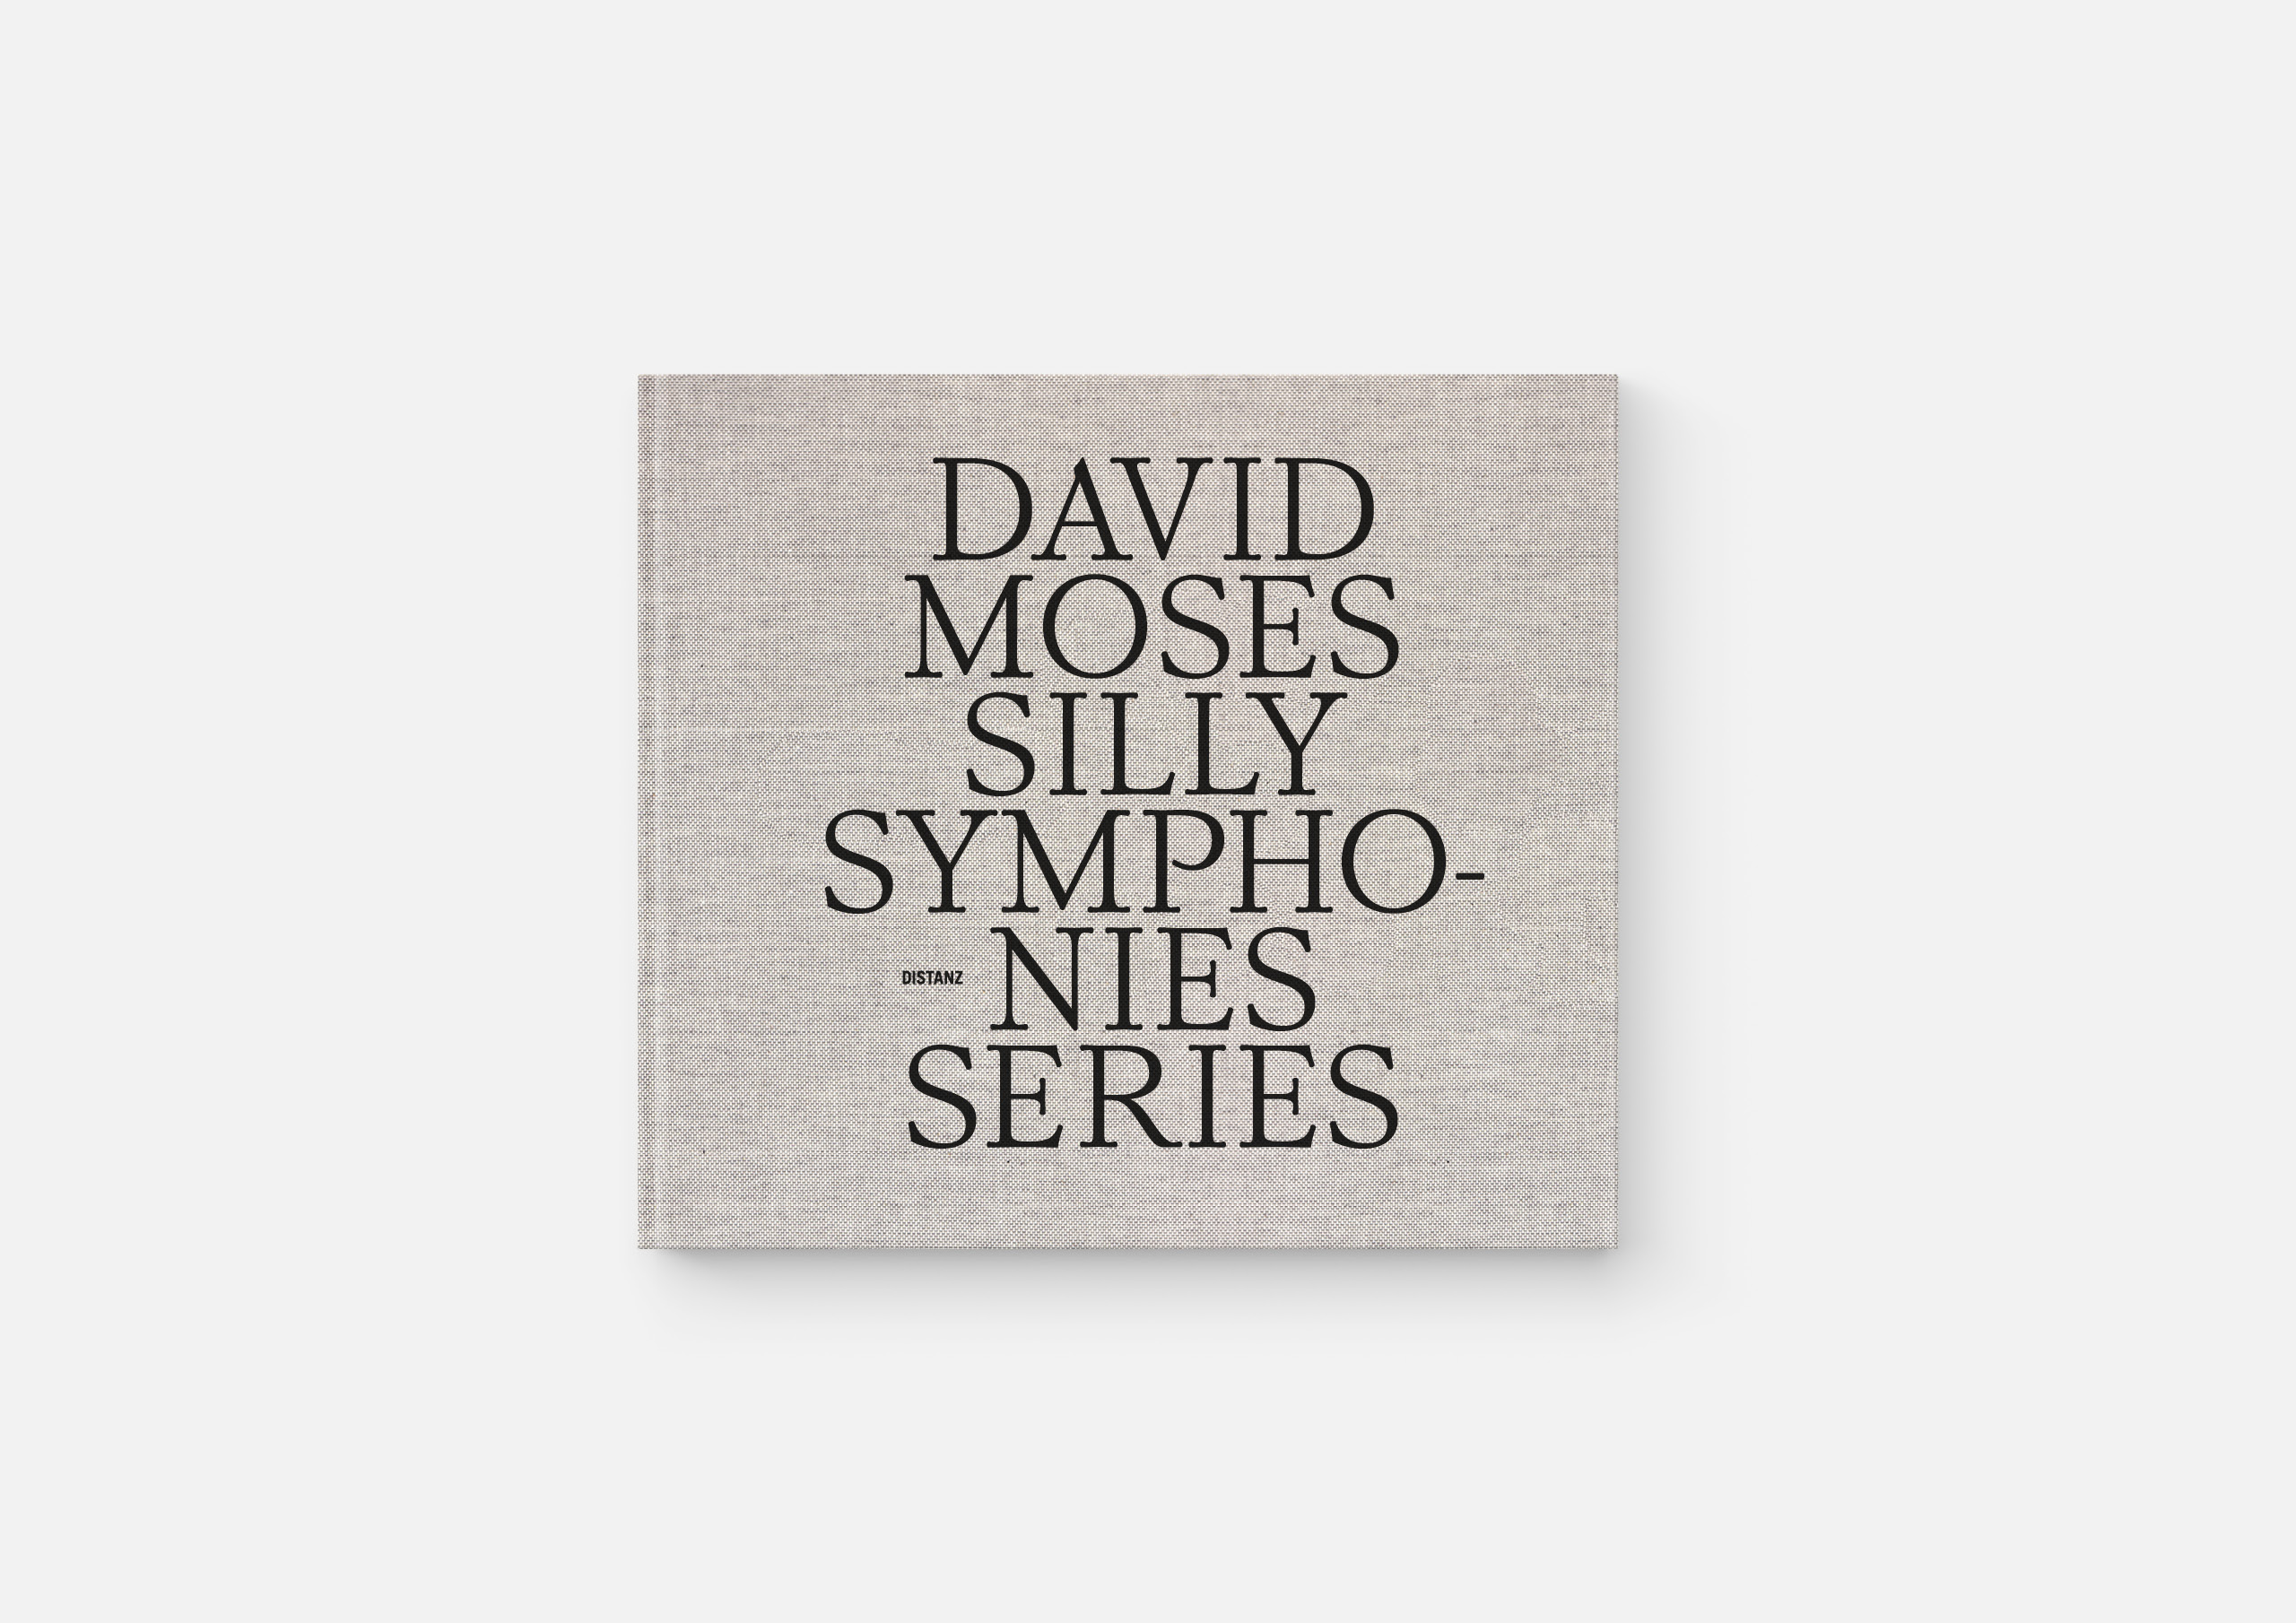 https://neuegestaltung.de/media/pages/clients/david-moses/a16838a244-1619427901/dm_silly_01_cover.jpg